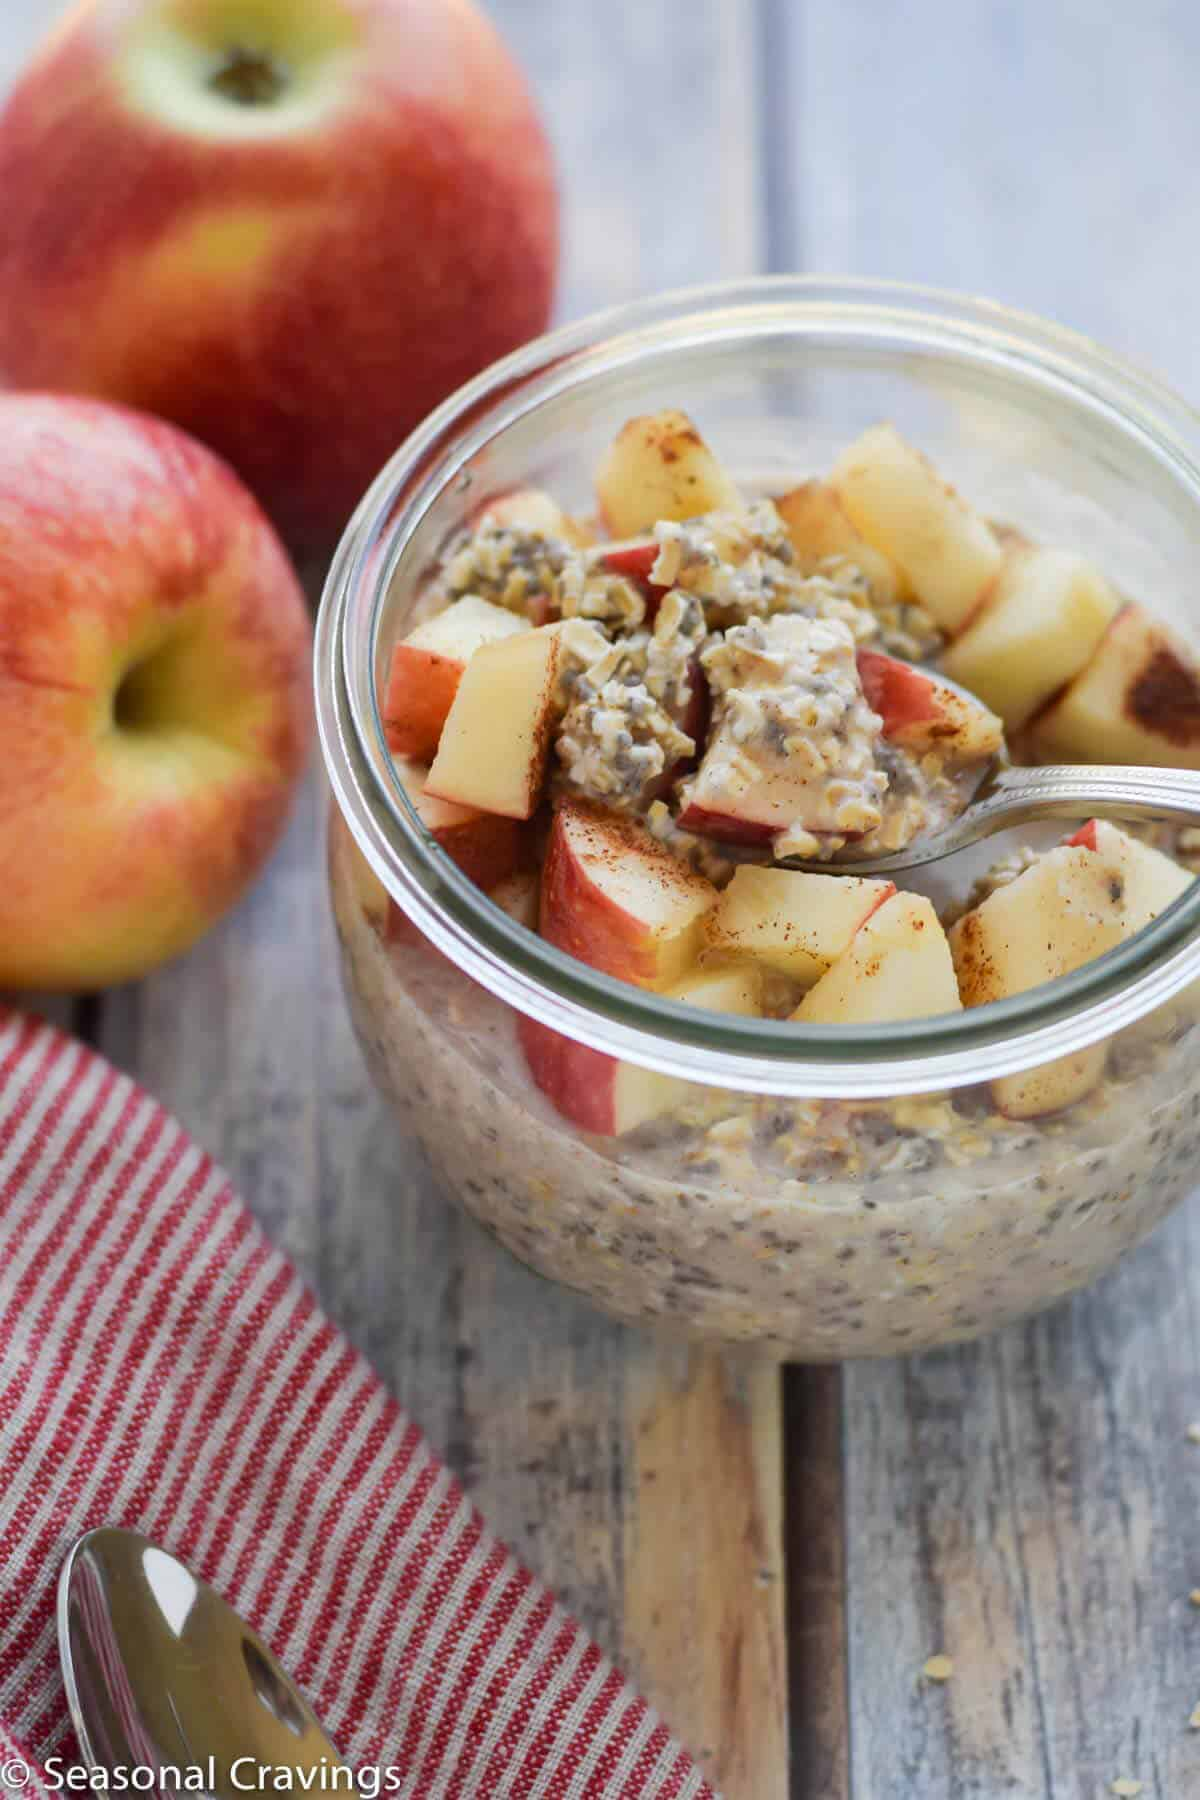 Oats with a spoon and apples on the side